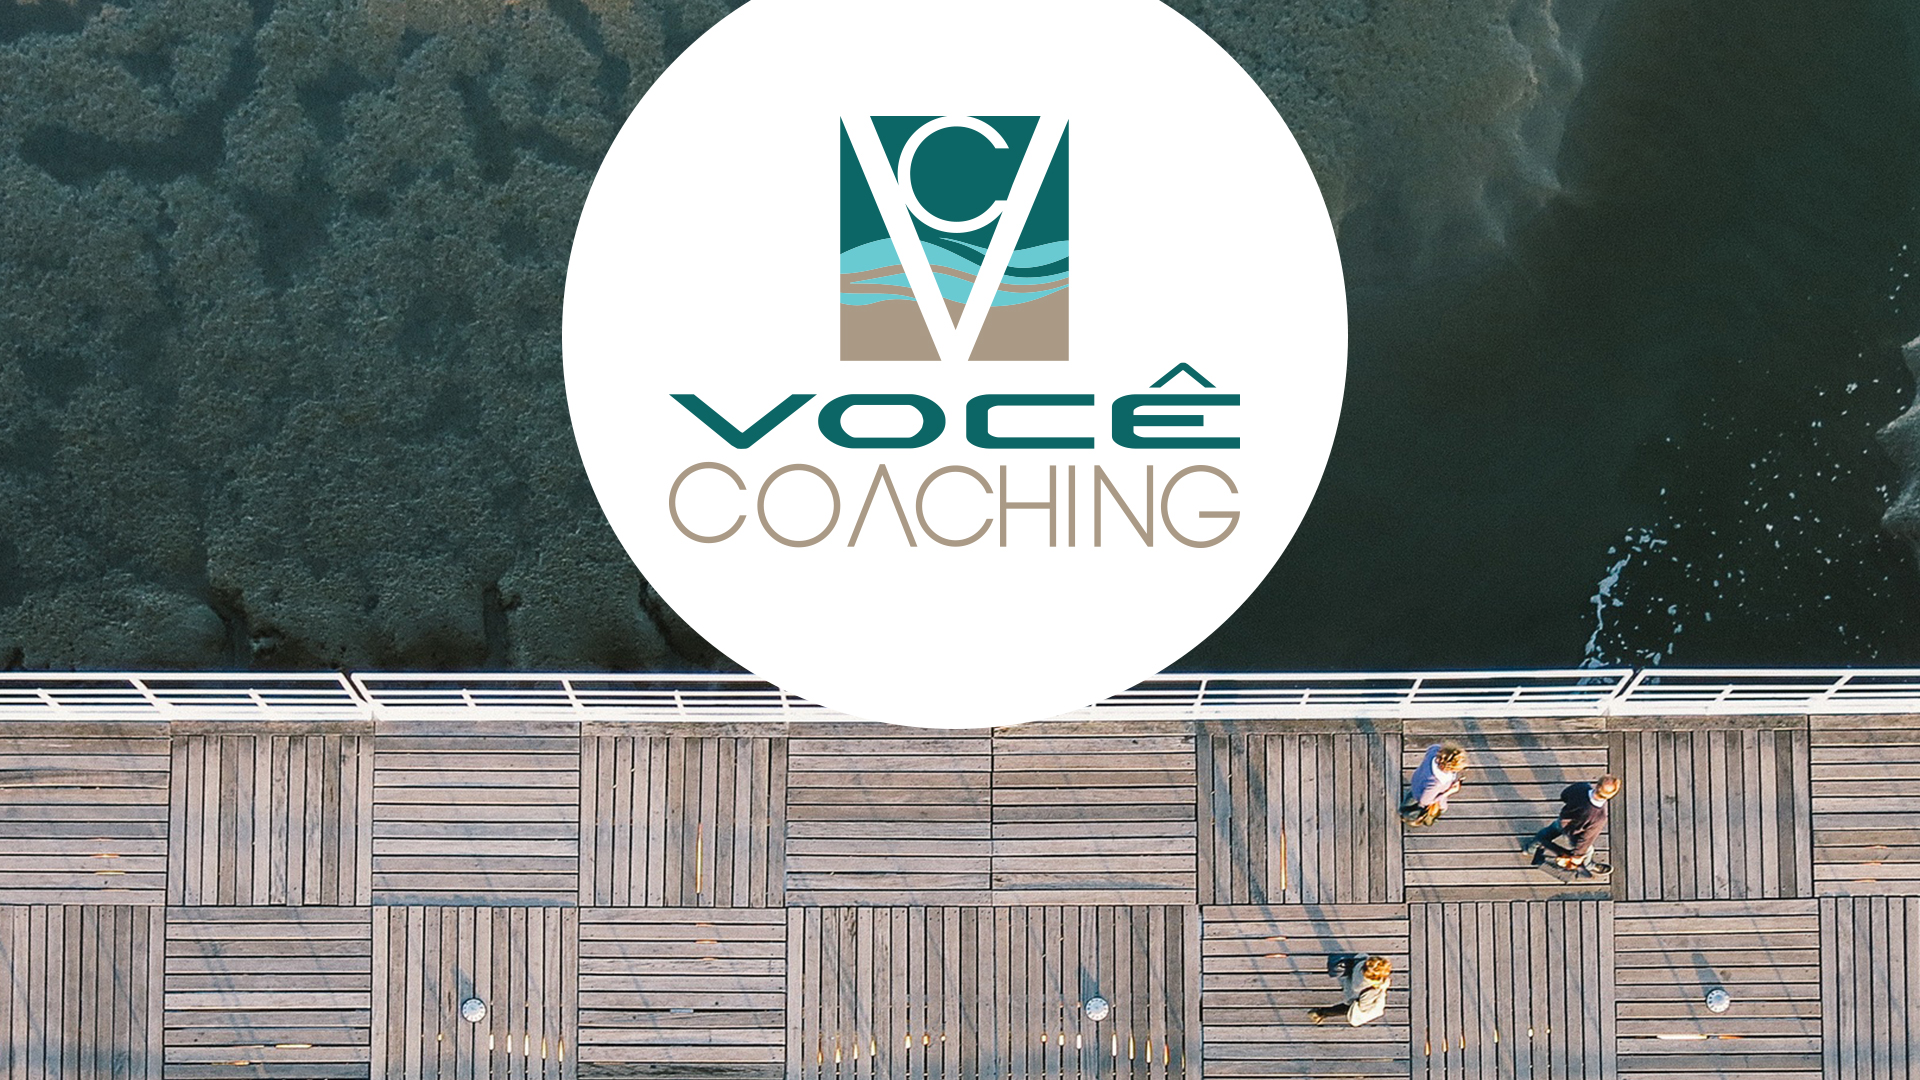 Voce Coaching